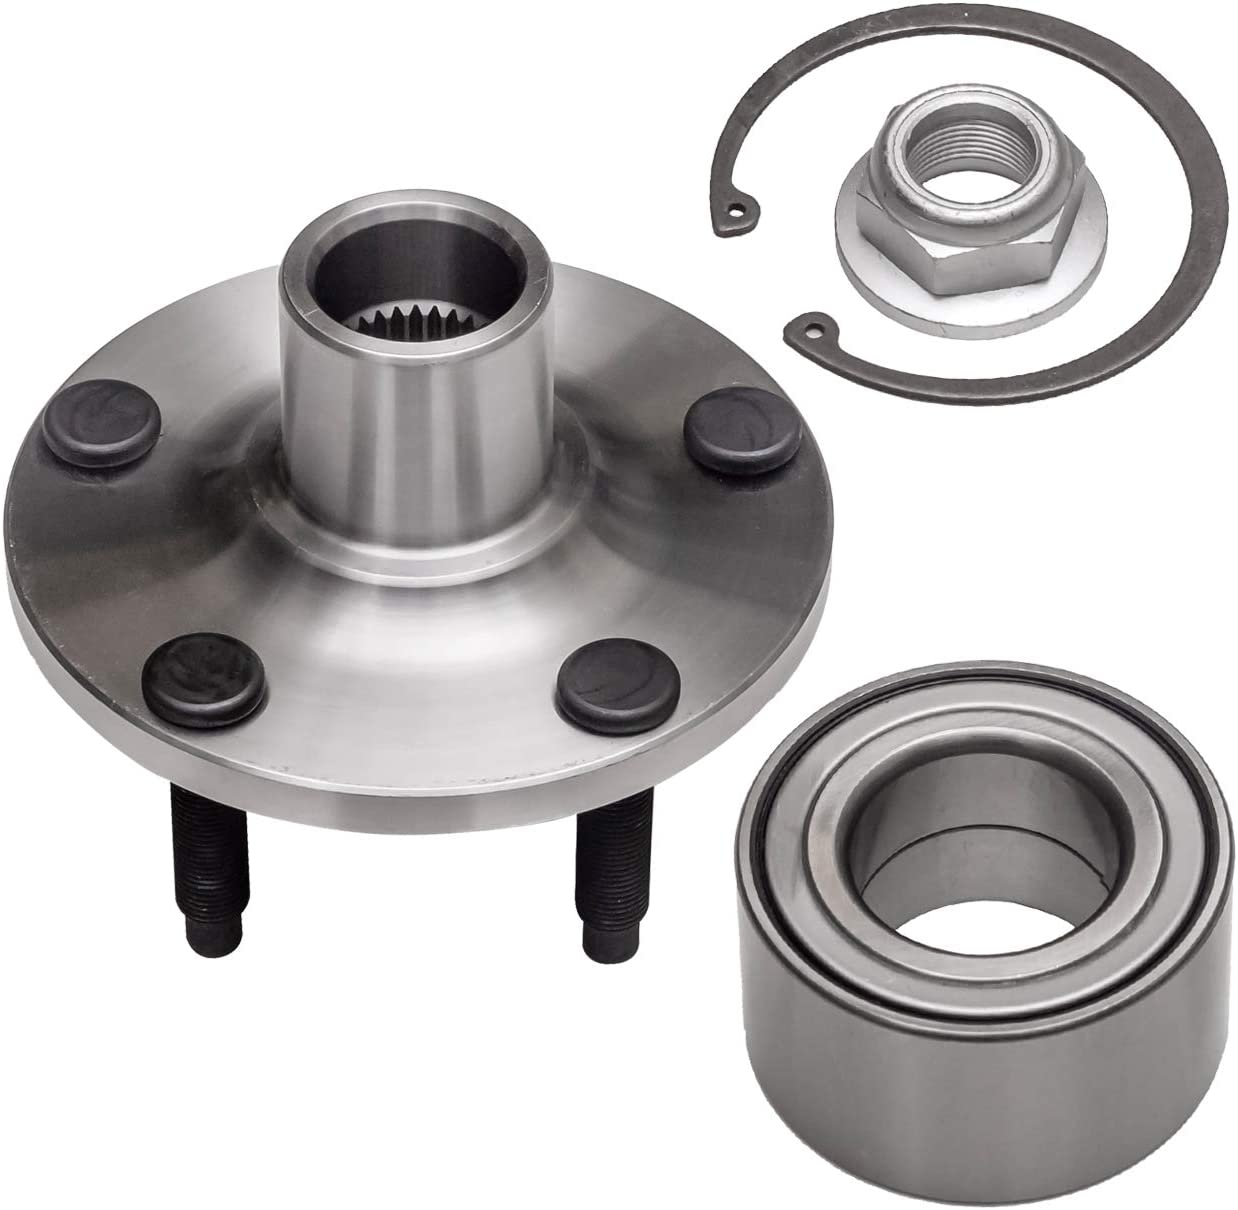 TUCAREST 518517 Front Wheel Bearing Assembly Compatible Super intense SALE and Credence Hub